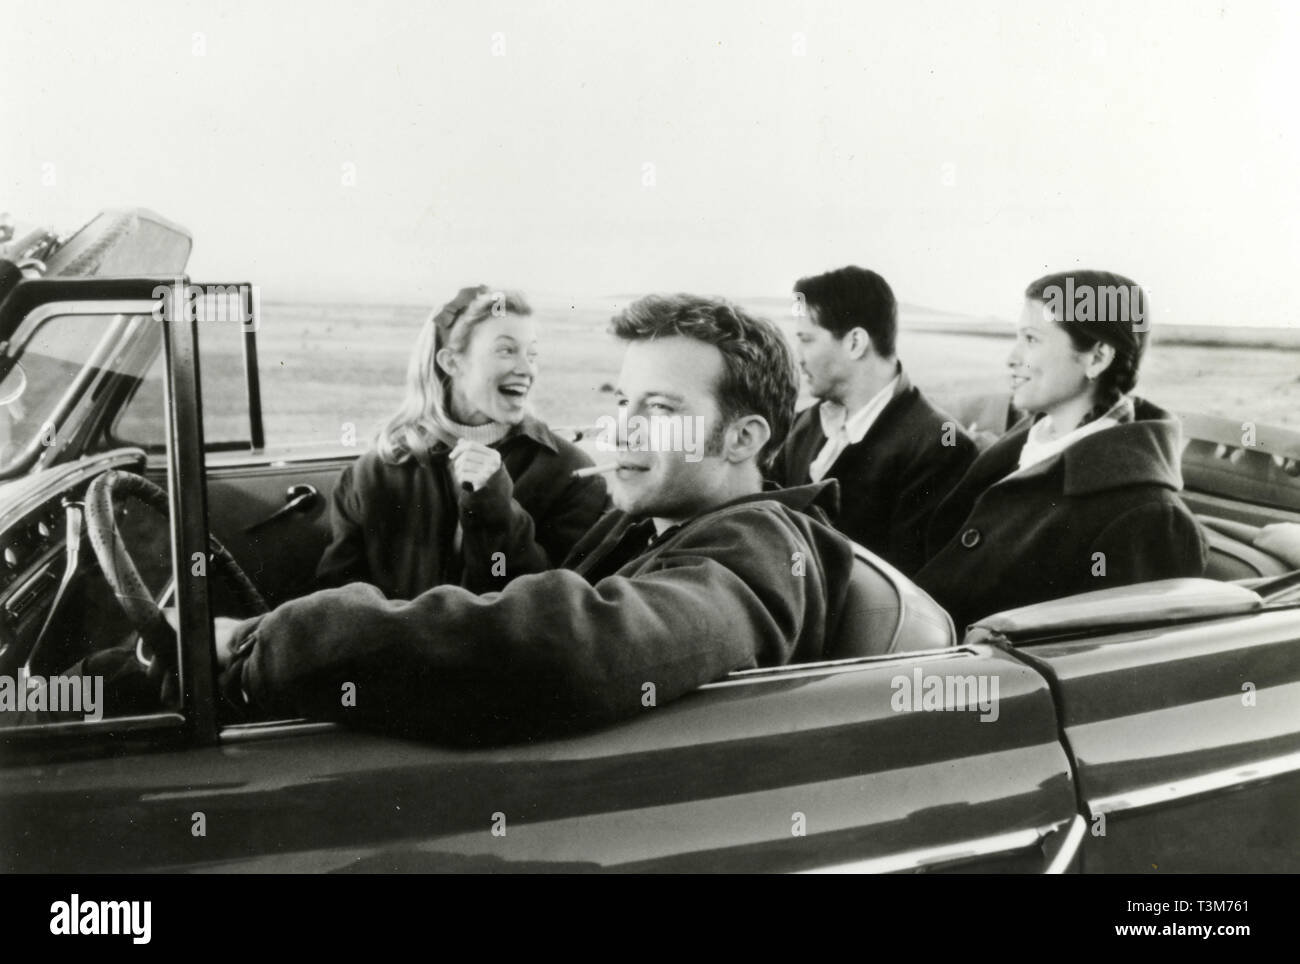 Thomas Jane, Gretchen Mol, Keanu Reeves, and Claire Forlani in the movie The Last Time I Commmitted Suicide, 1997 Stock Photo